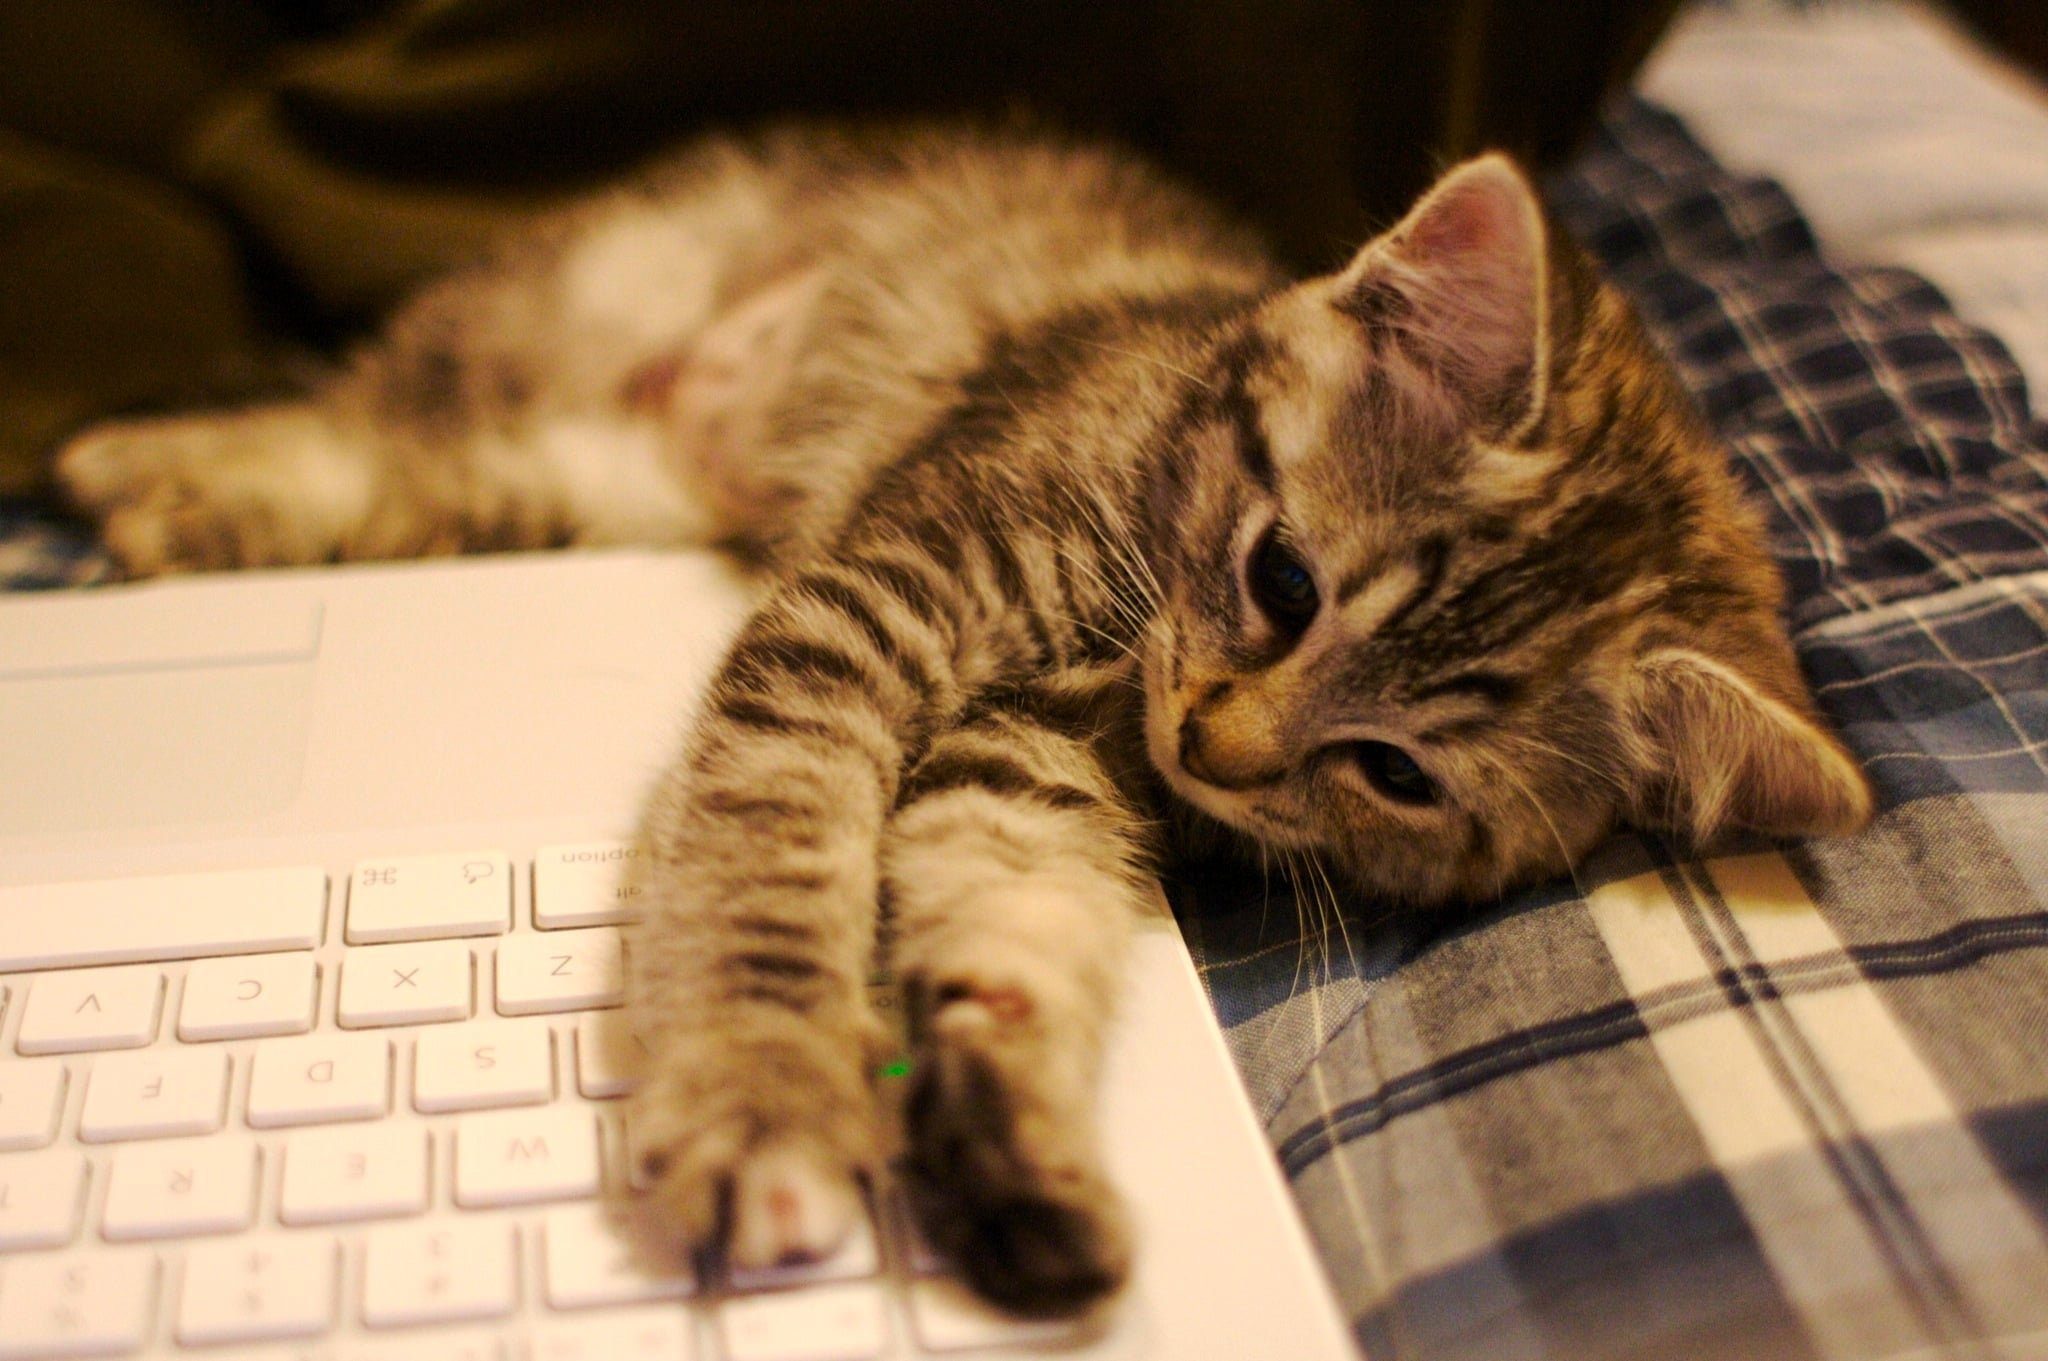 Typing up a manifesto can sure wear a cat out! Source: Flickr user Ryan Forsythe